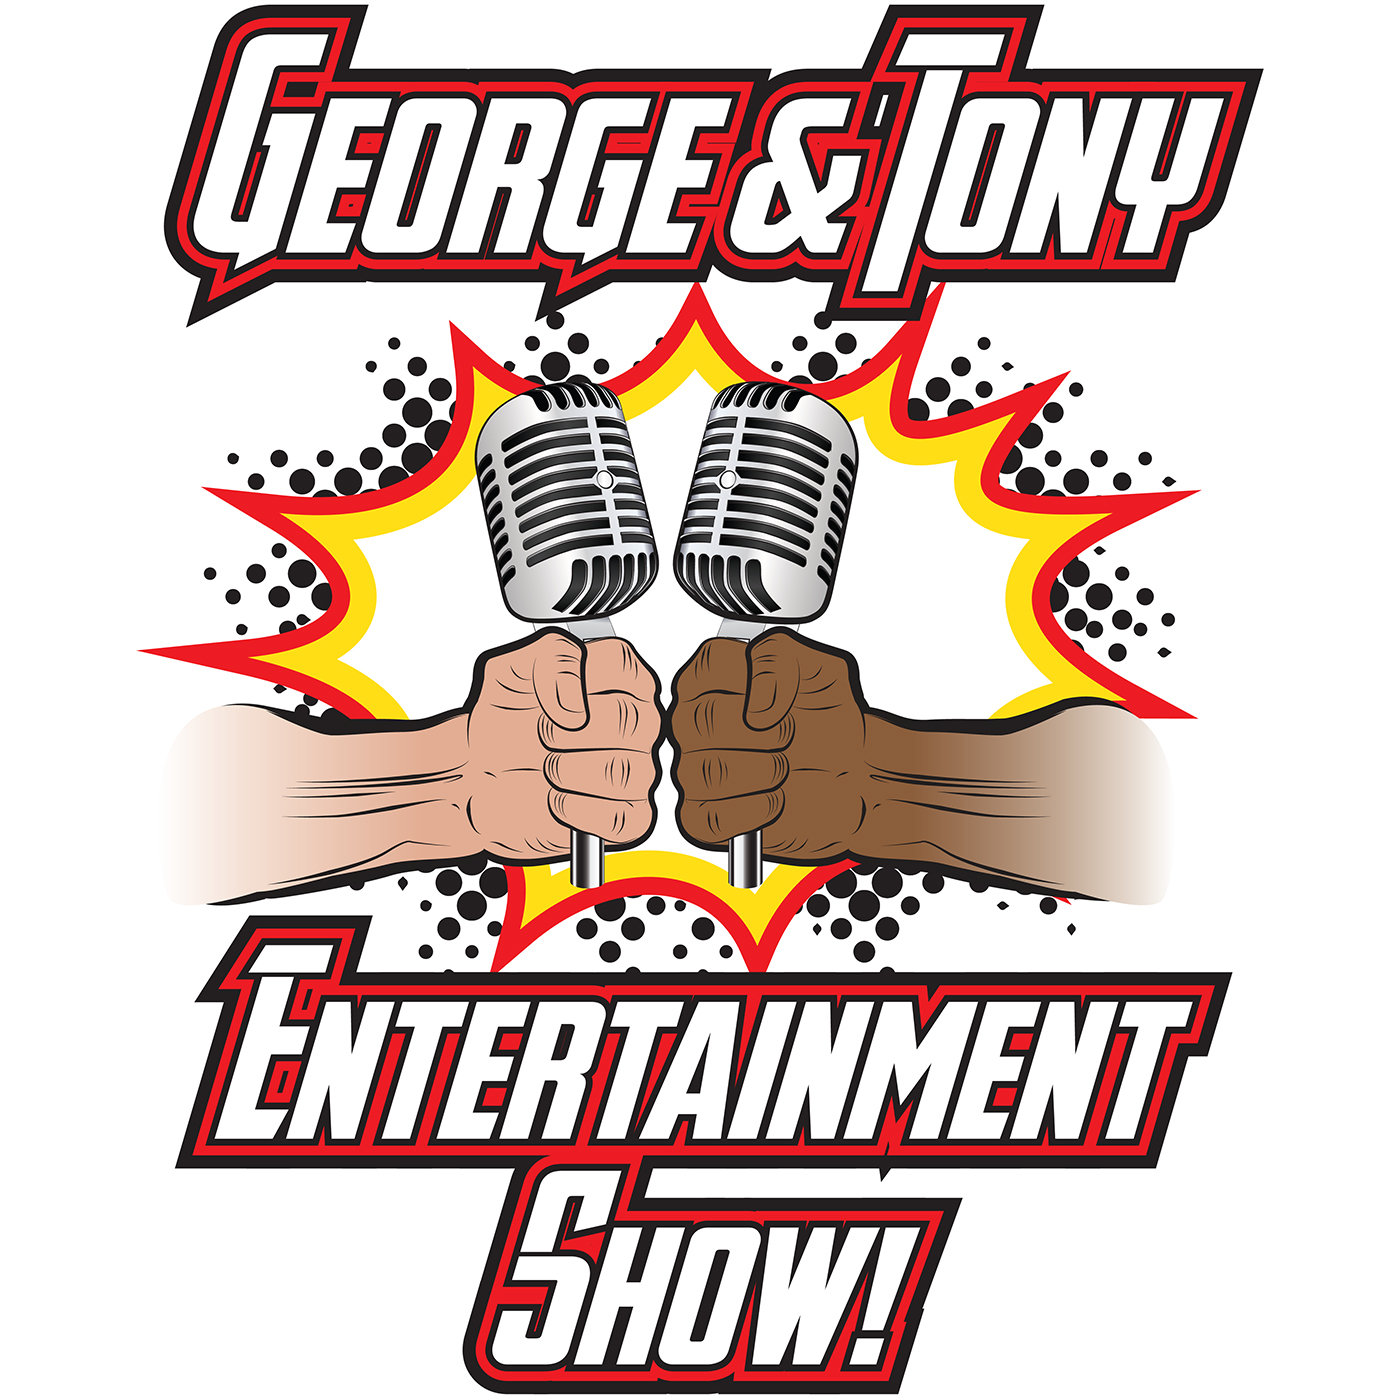 George and Tony Entertainment Show #137